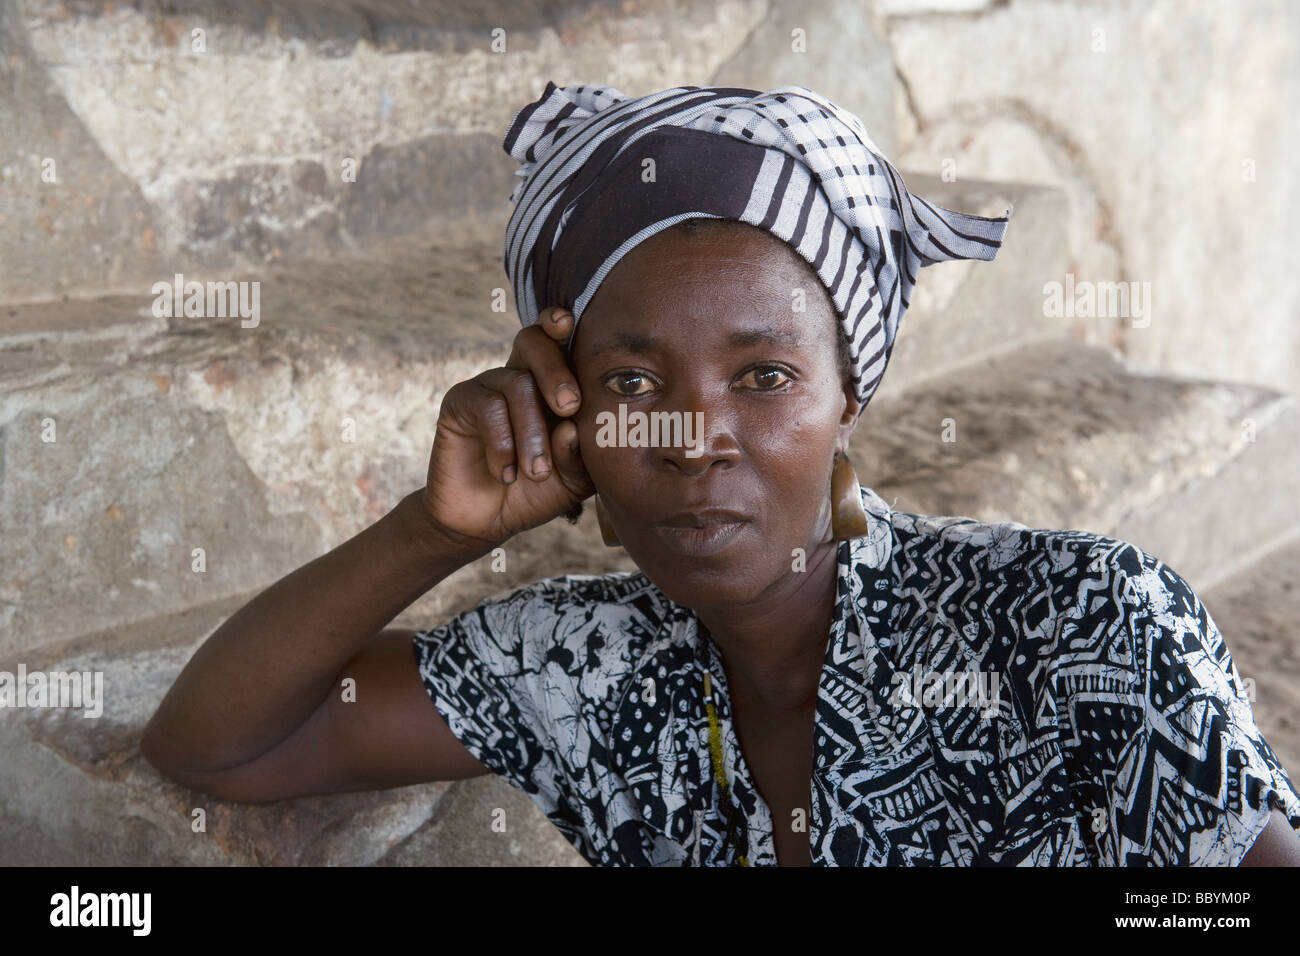 Portrait of a woman with headscarf Quelimane Mozambique - Stock Image